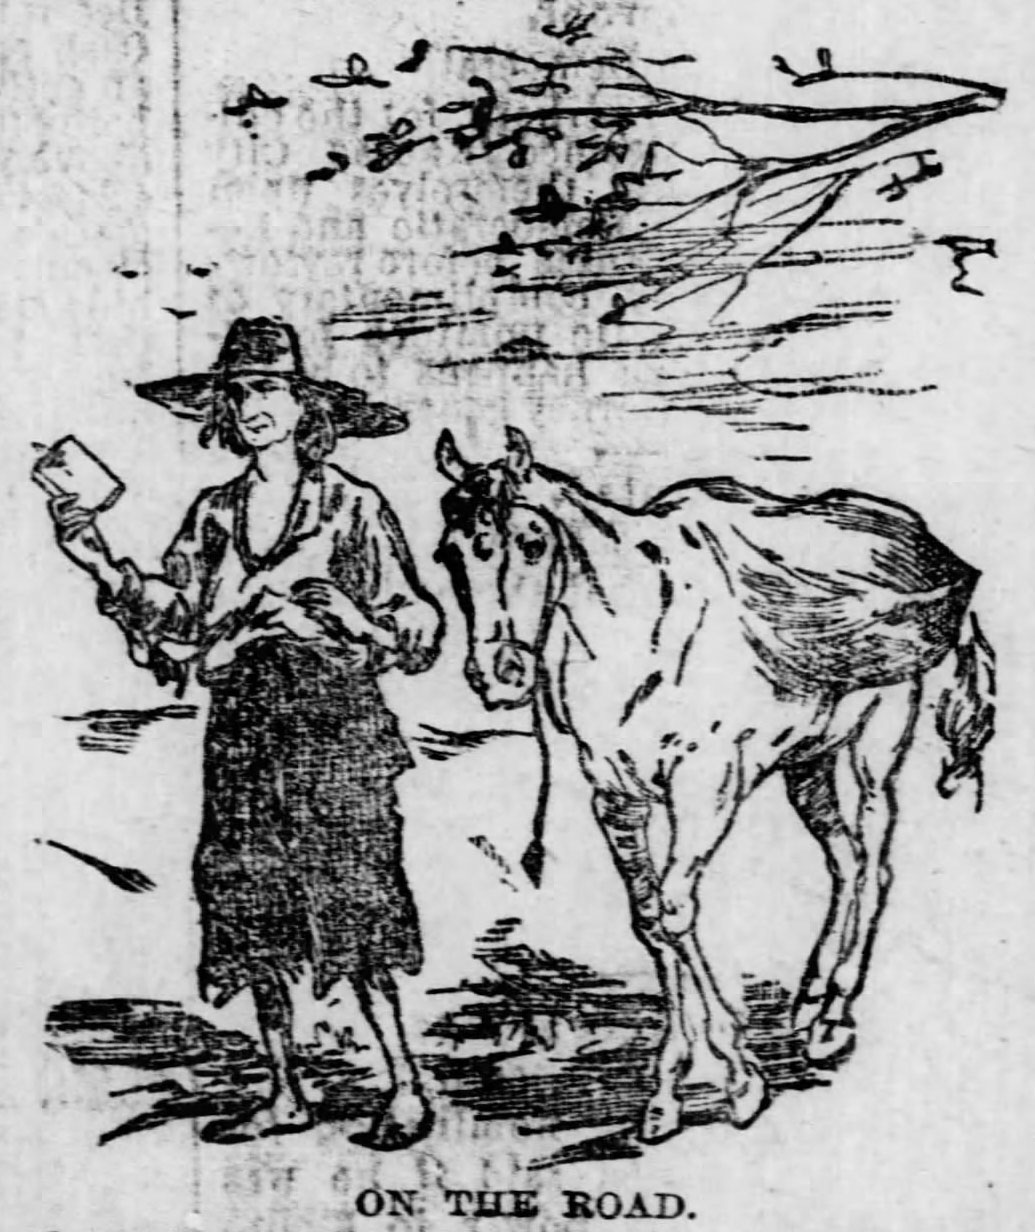 Johnny Appleseed with horse. Pencil drawing.